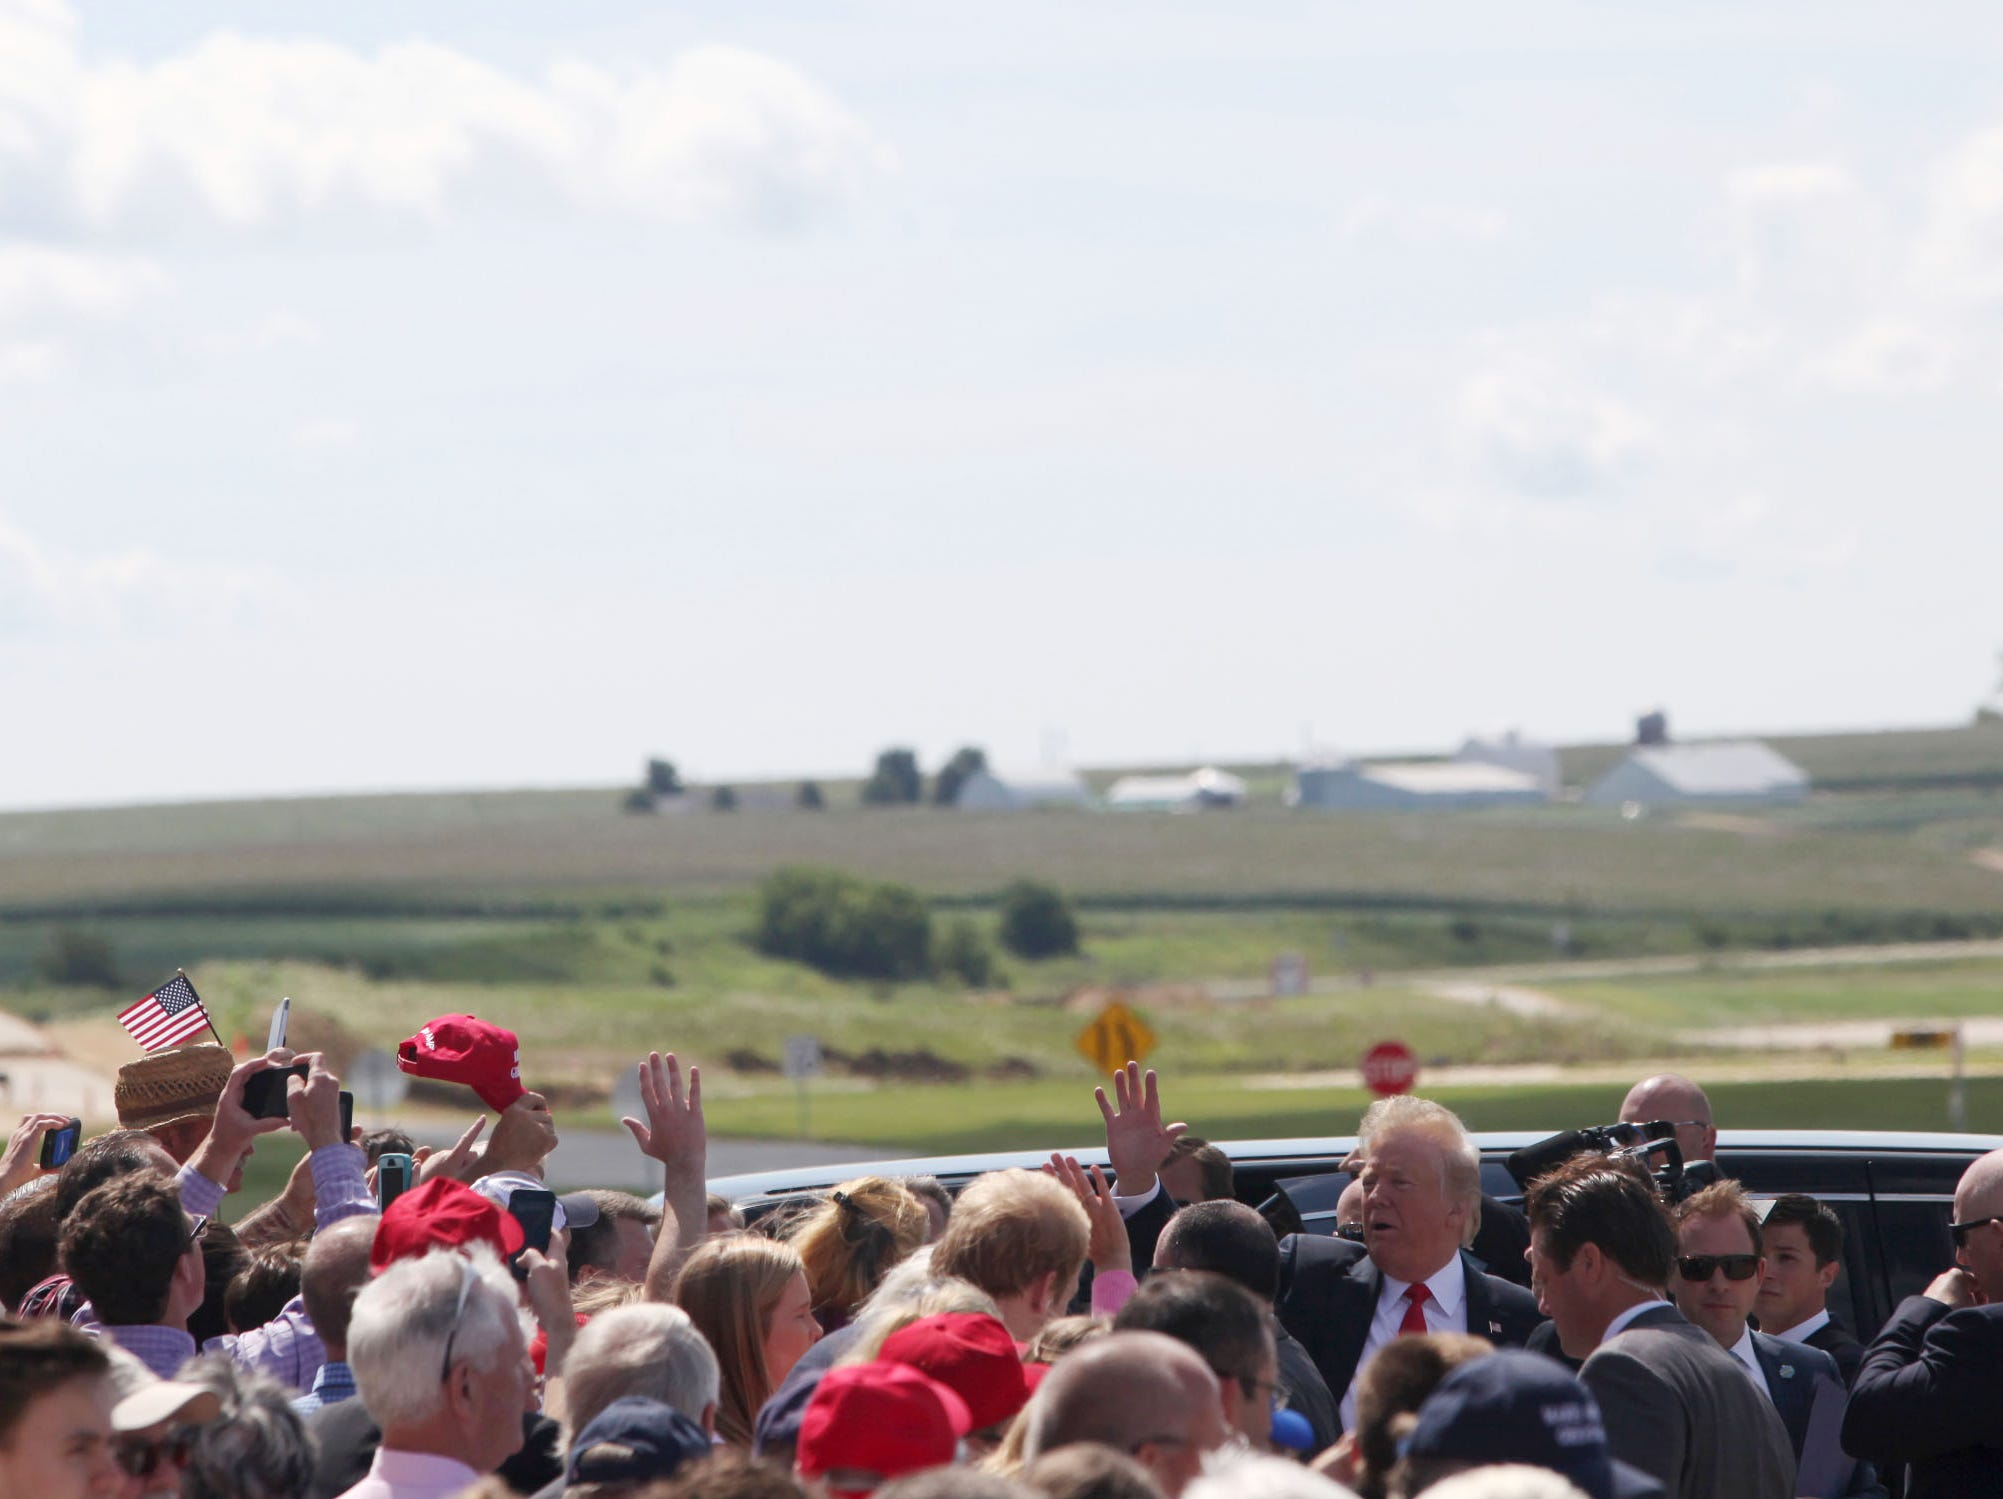 President Donald Trump greets guests after arriving at Dubuque Regional Airport in Dubuque, Iowa, on Thursday morning, July 26, 2018. Trump was in the state to participate in a roundtable discussion about workforce development at Northeast Iowa Community College in Peosta, Iowa.